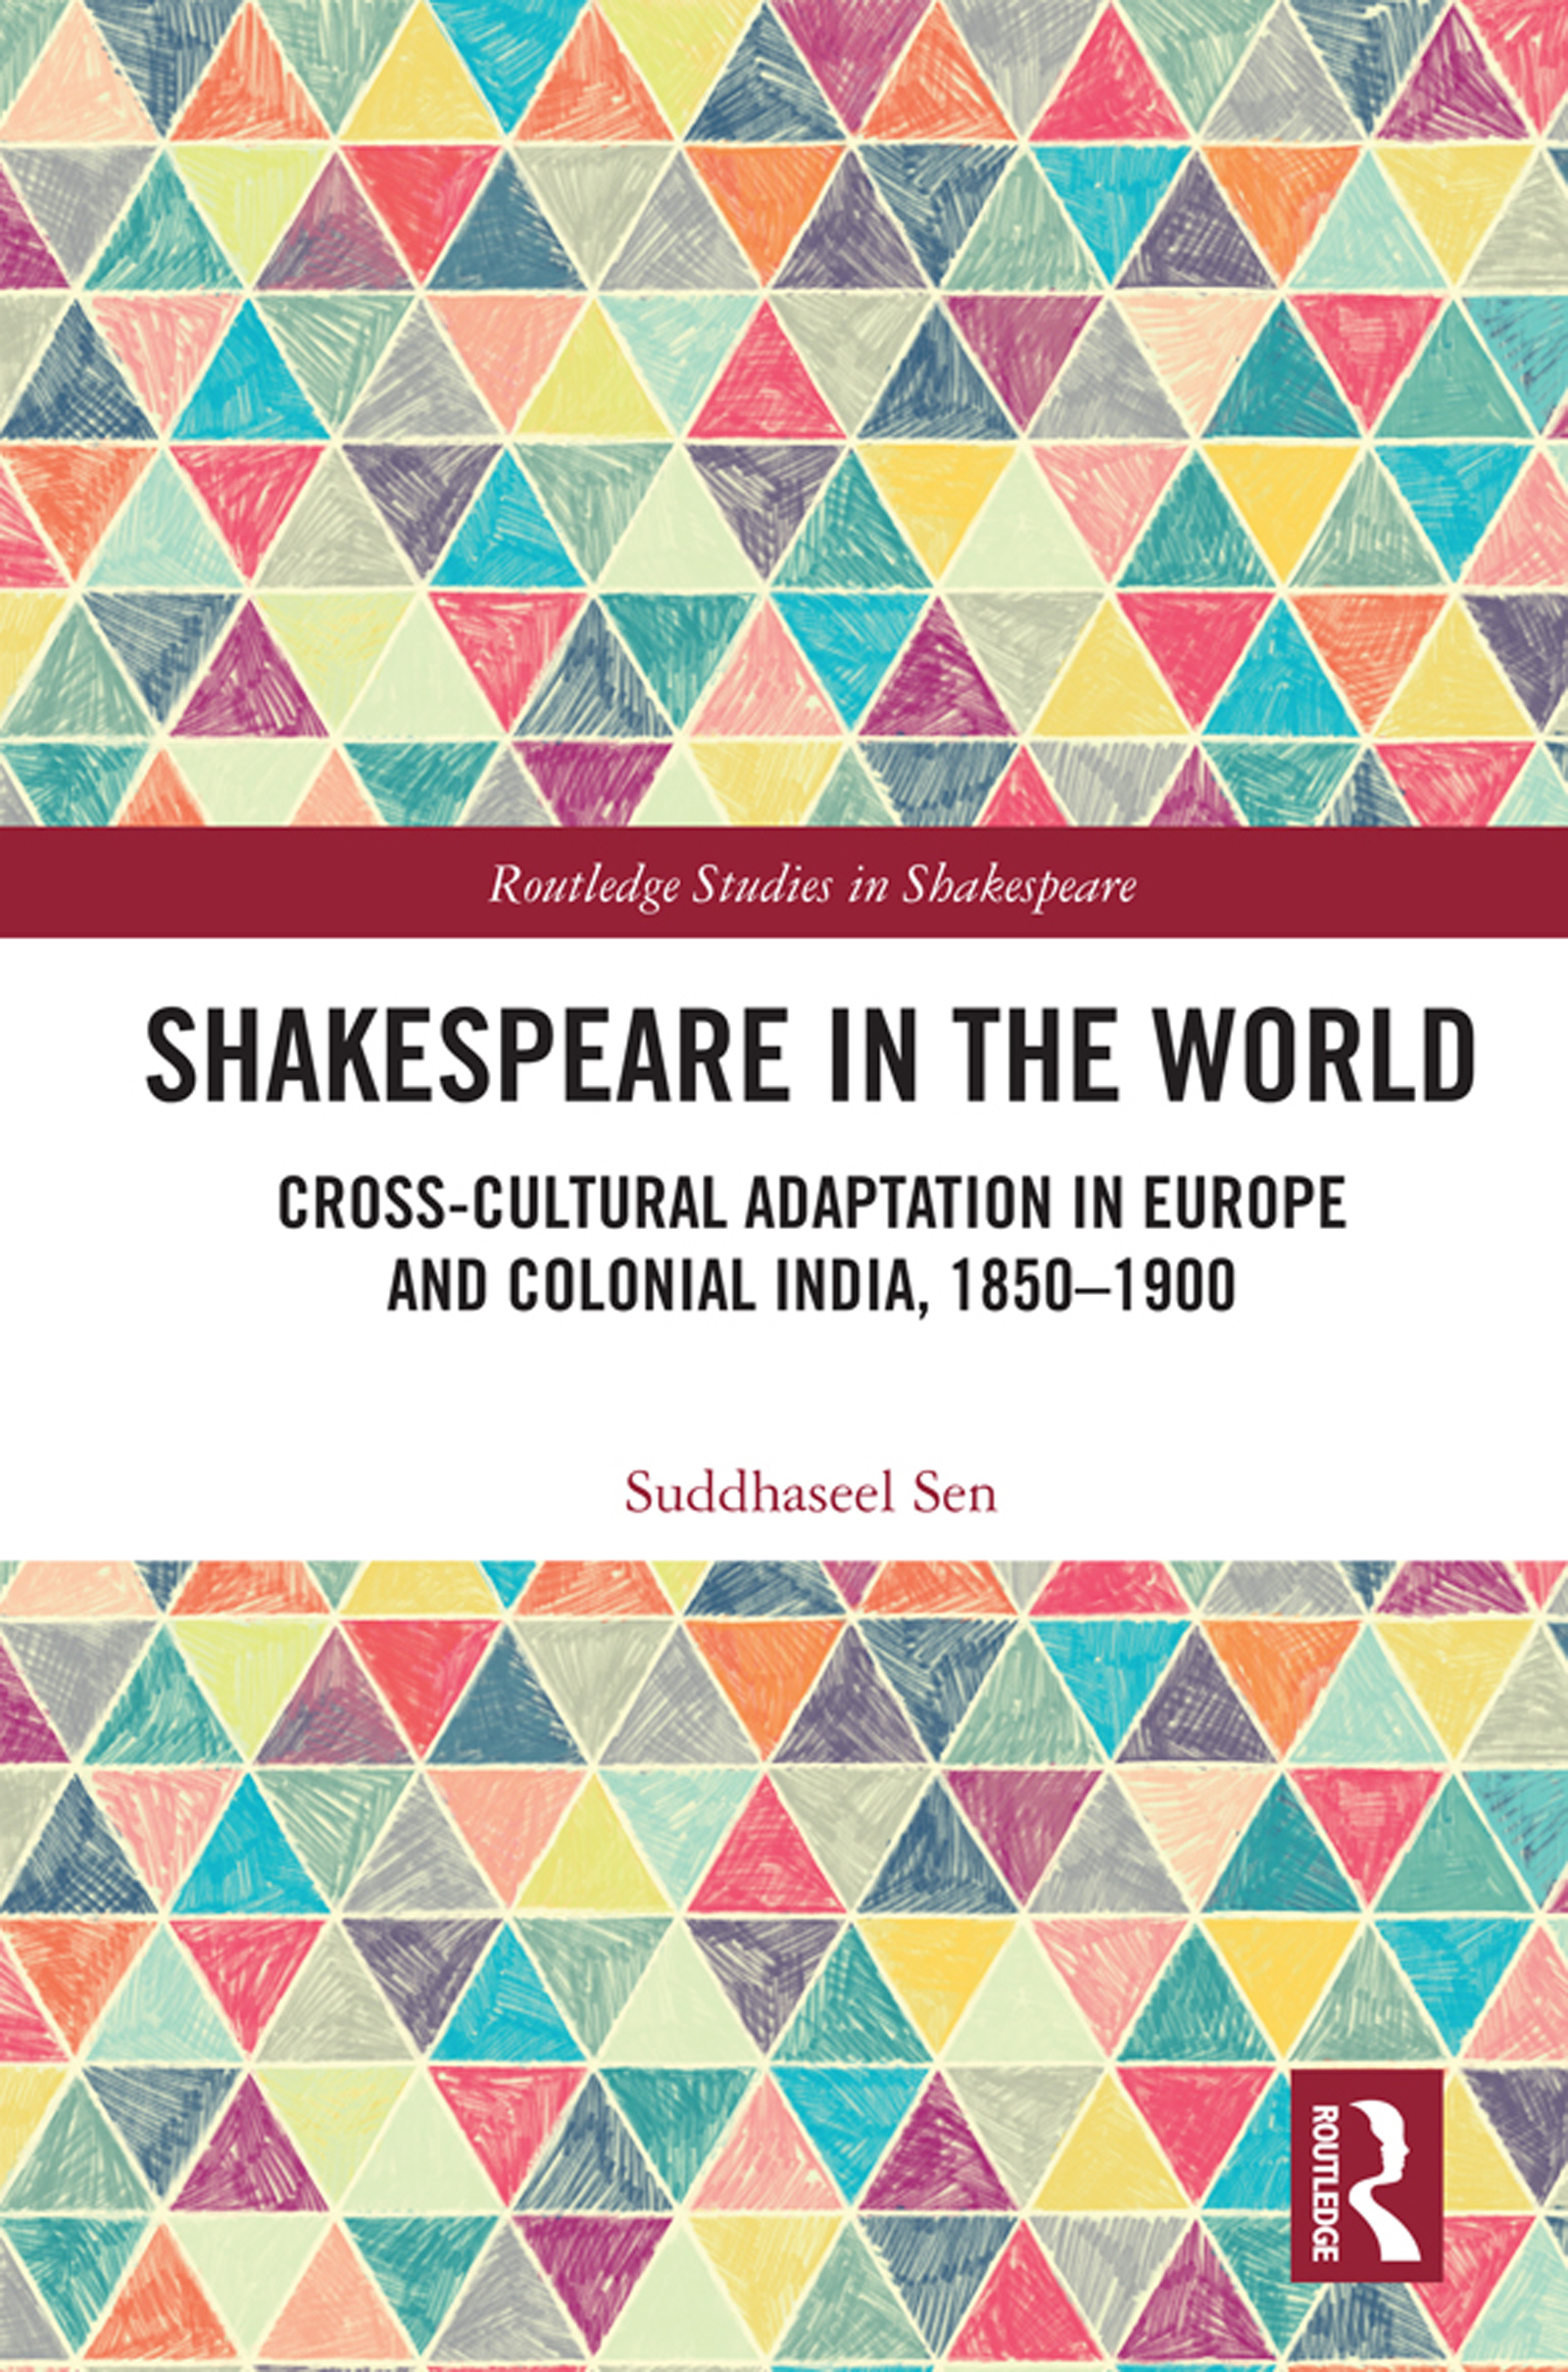 Shakespeare in the World